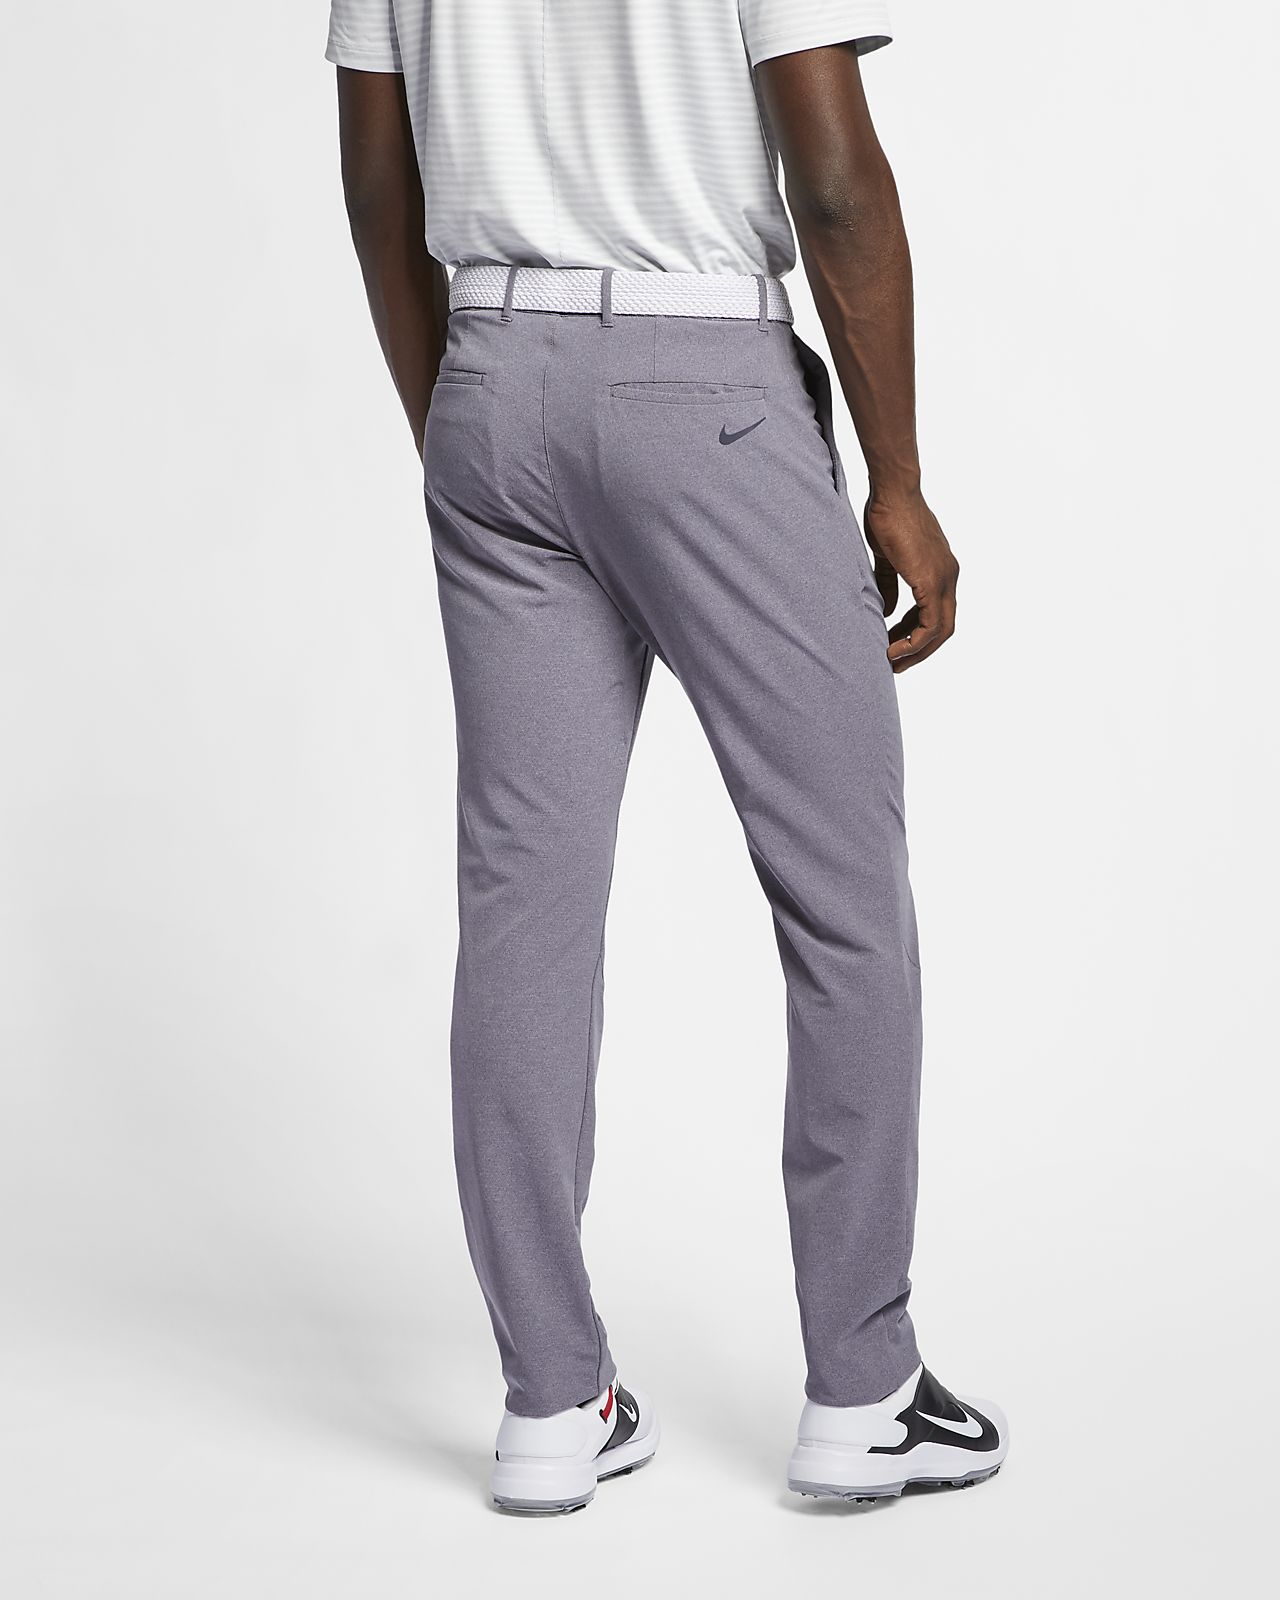 fe9cdf2af Nike Flex Men's Slim Fit Golf Pants. Nike.com